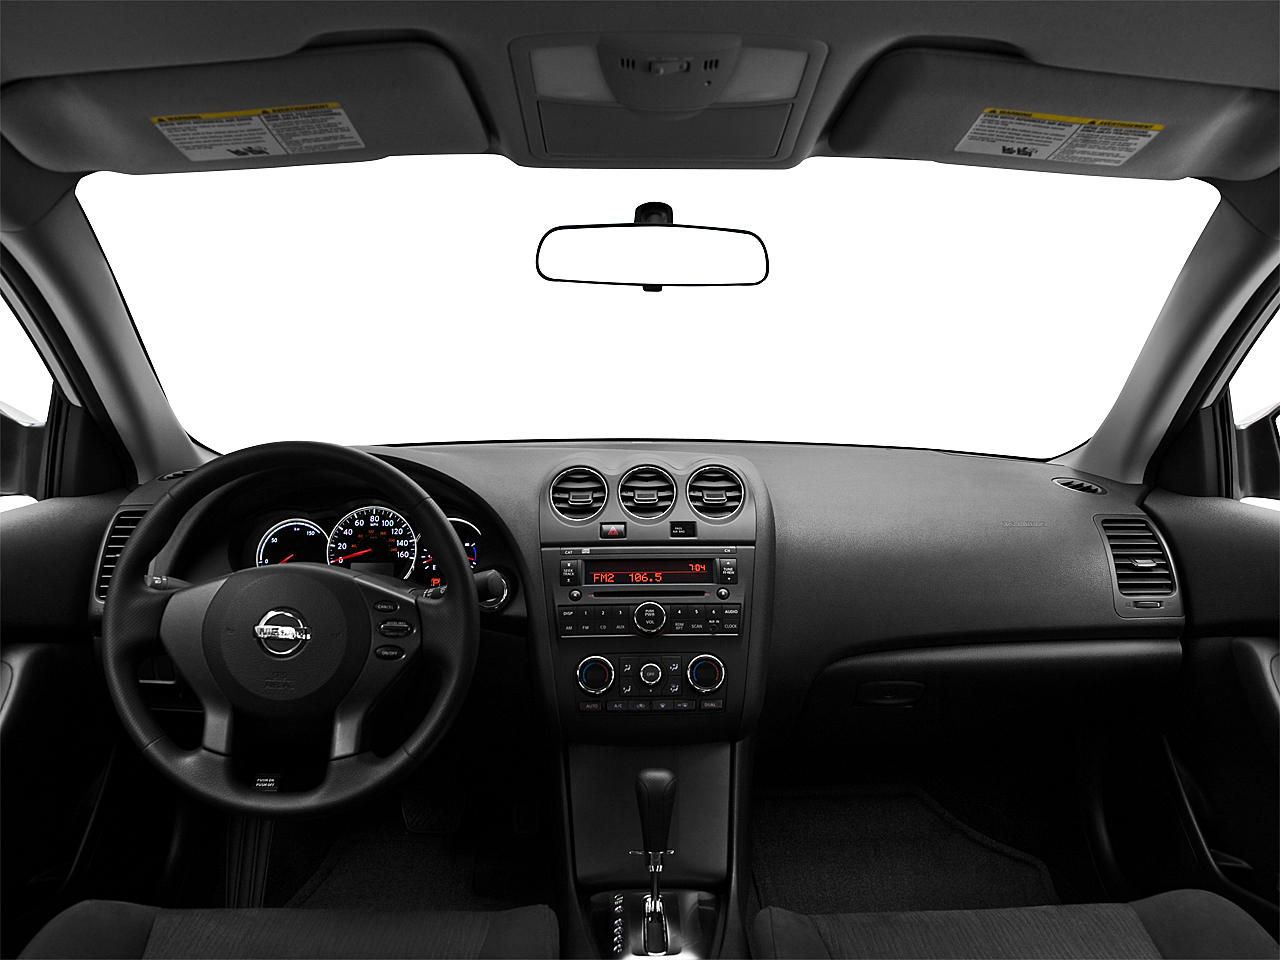 2010 Nissan Altima Hybrid Centered Wide Dash Shot